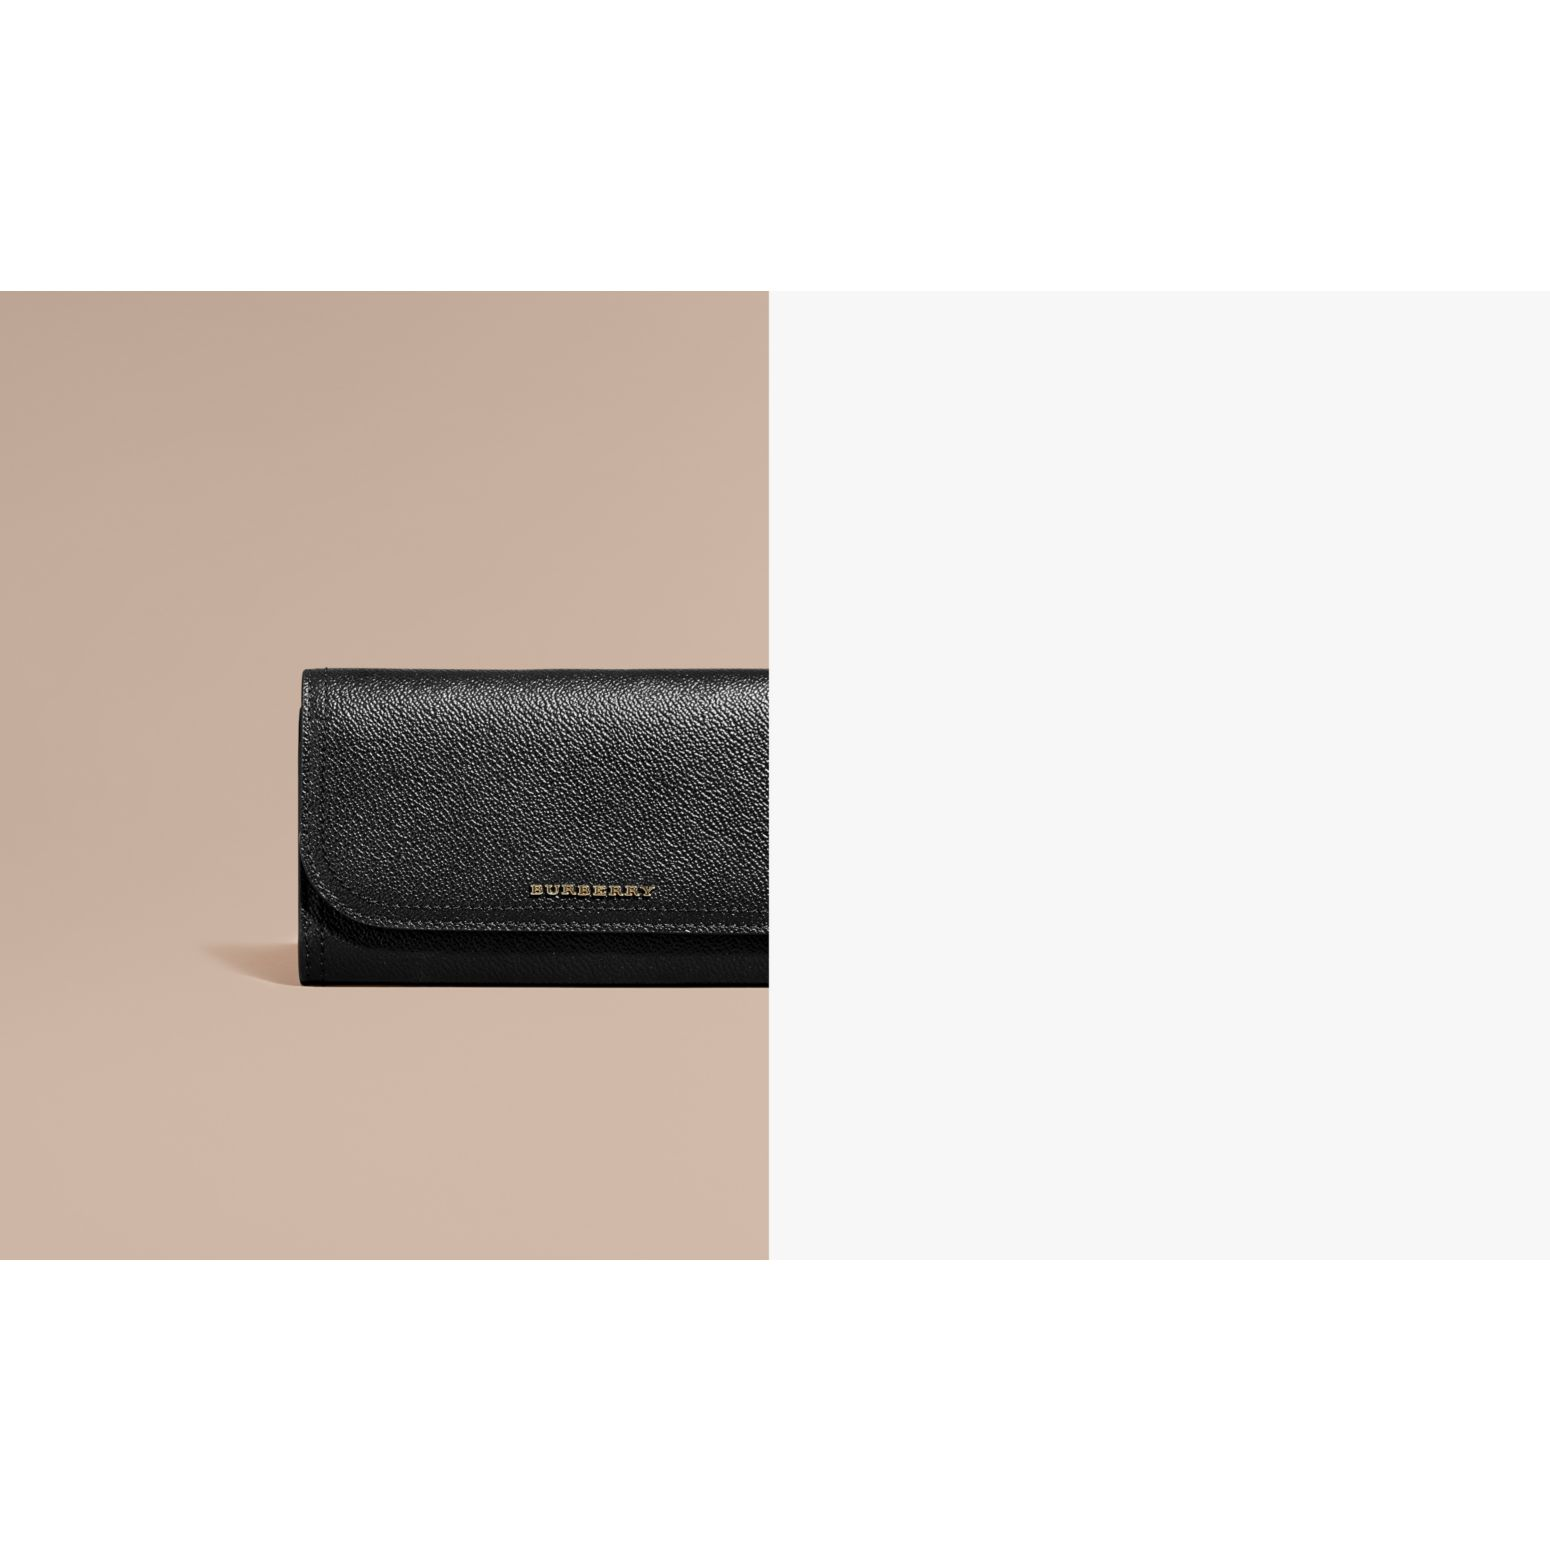 Grainy Leather Slim Continental Wallet in Black - Women | Burberry Canada - gallery image 2